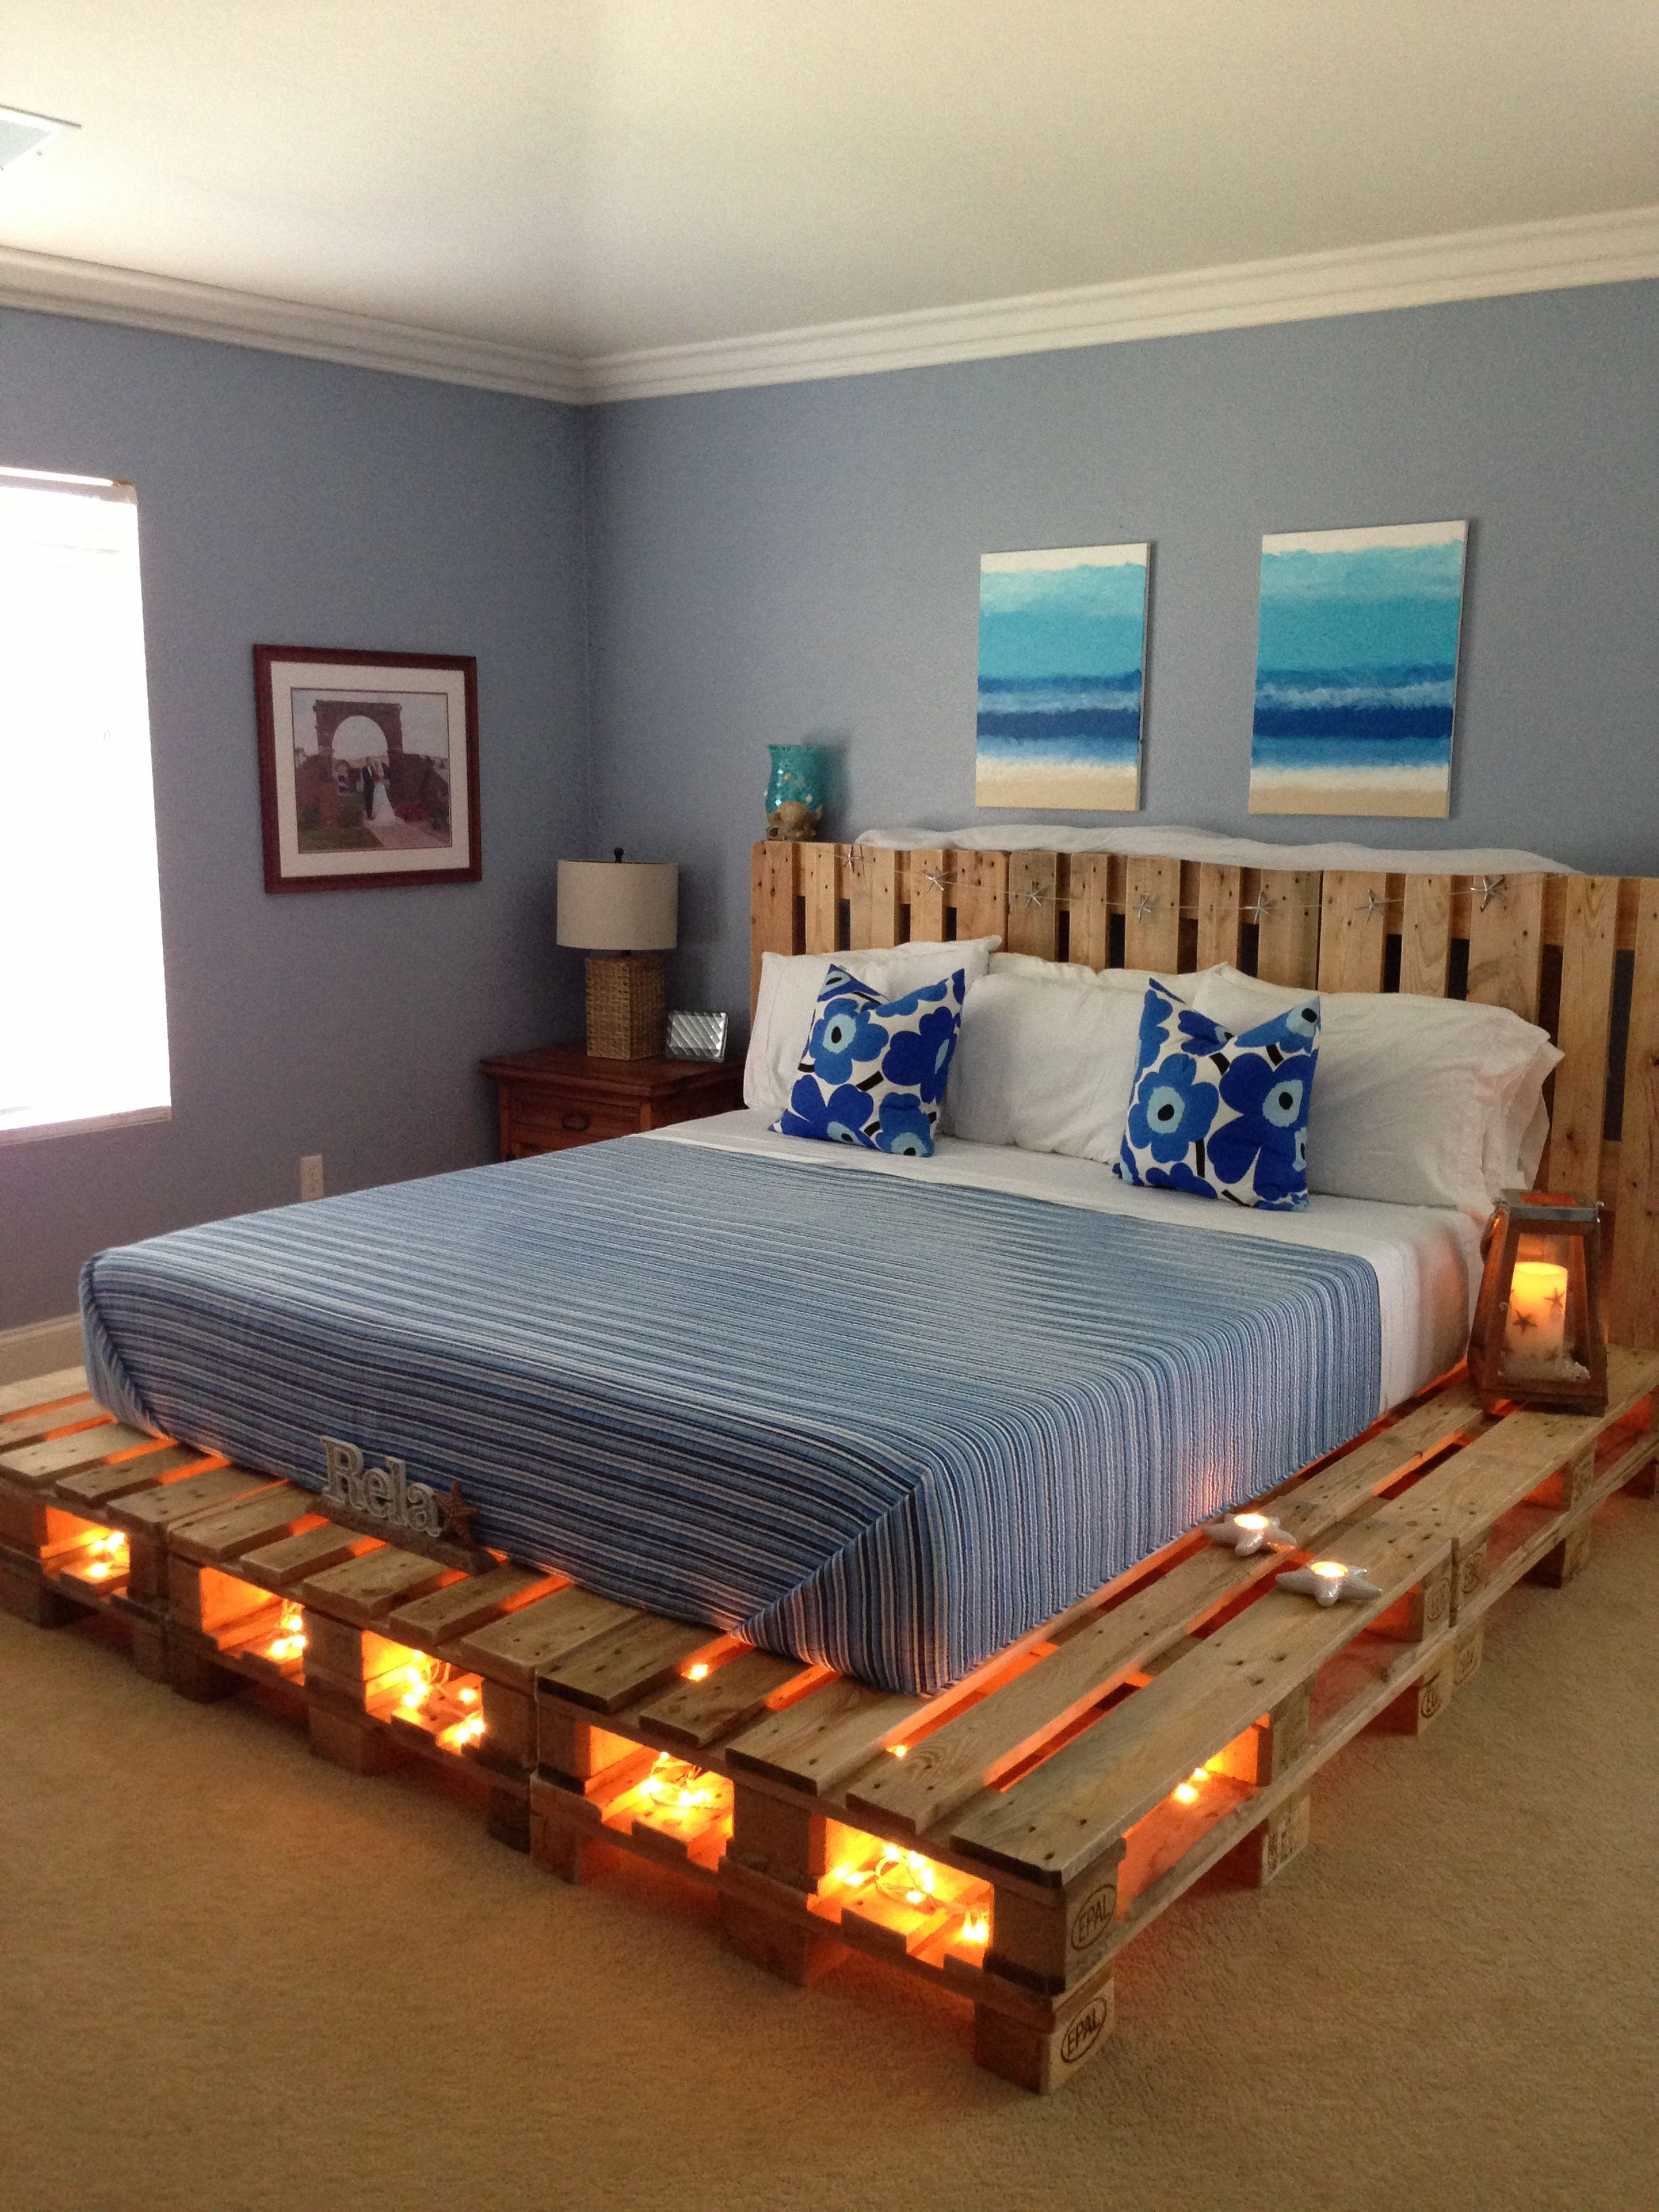 Amazing and Inexpensive DIY Pallet Furniture Ideas   Projects to Try     Pallet Beds are cool